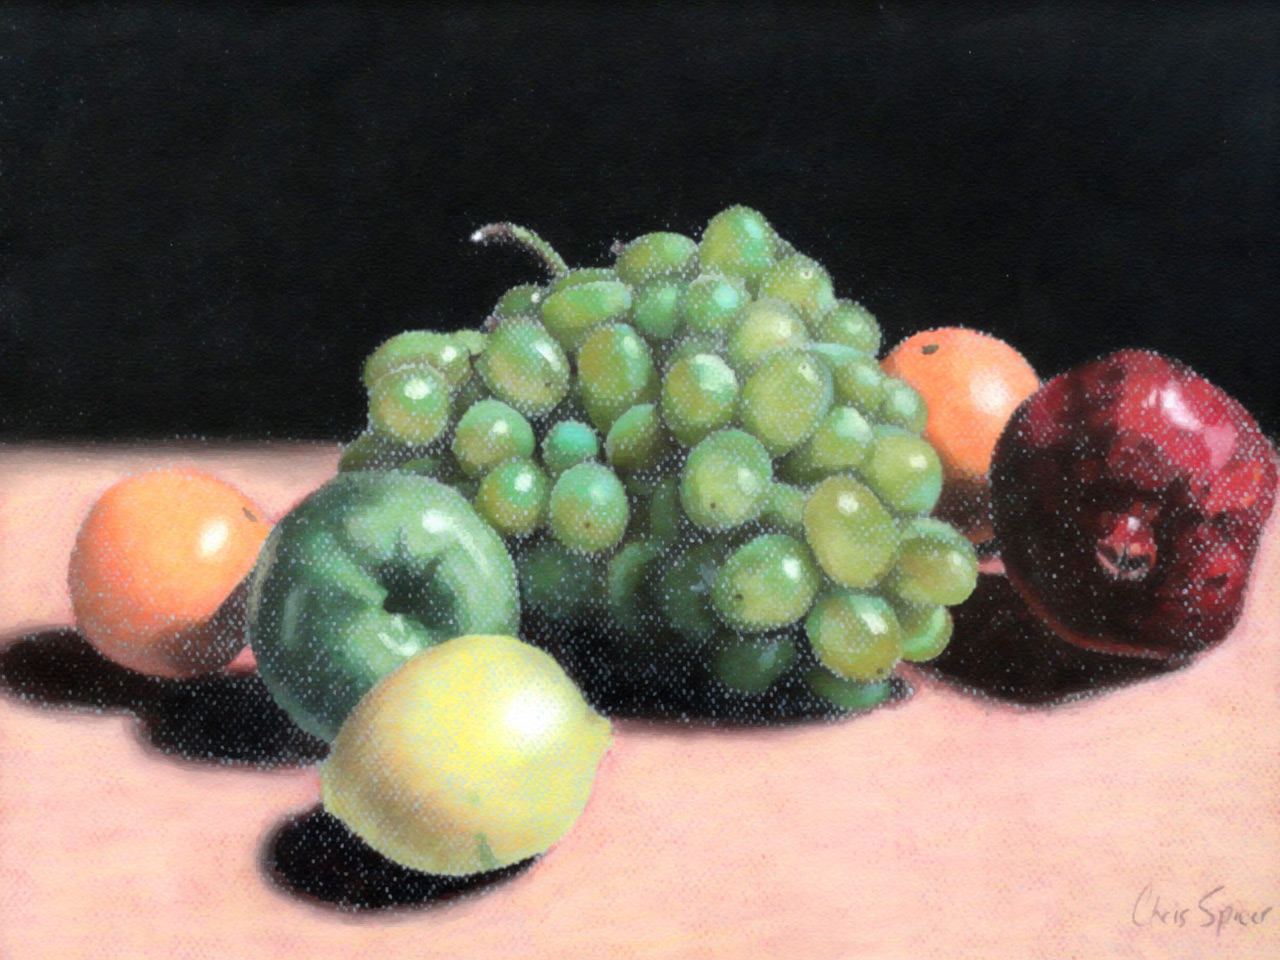 Fruit: Oil Pastel Drawing by Christopher Spicer - Still life composition including a grape bunch, apple, orange, lemon, and pomegranate.